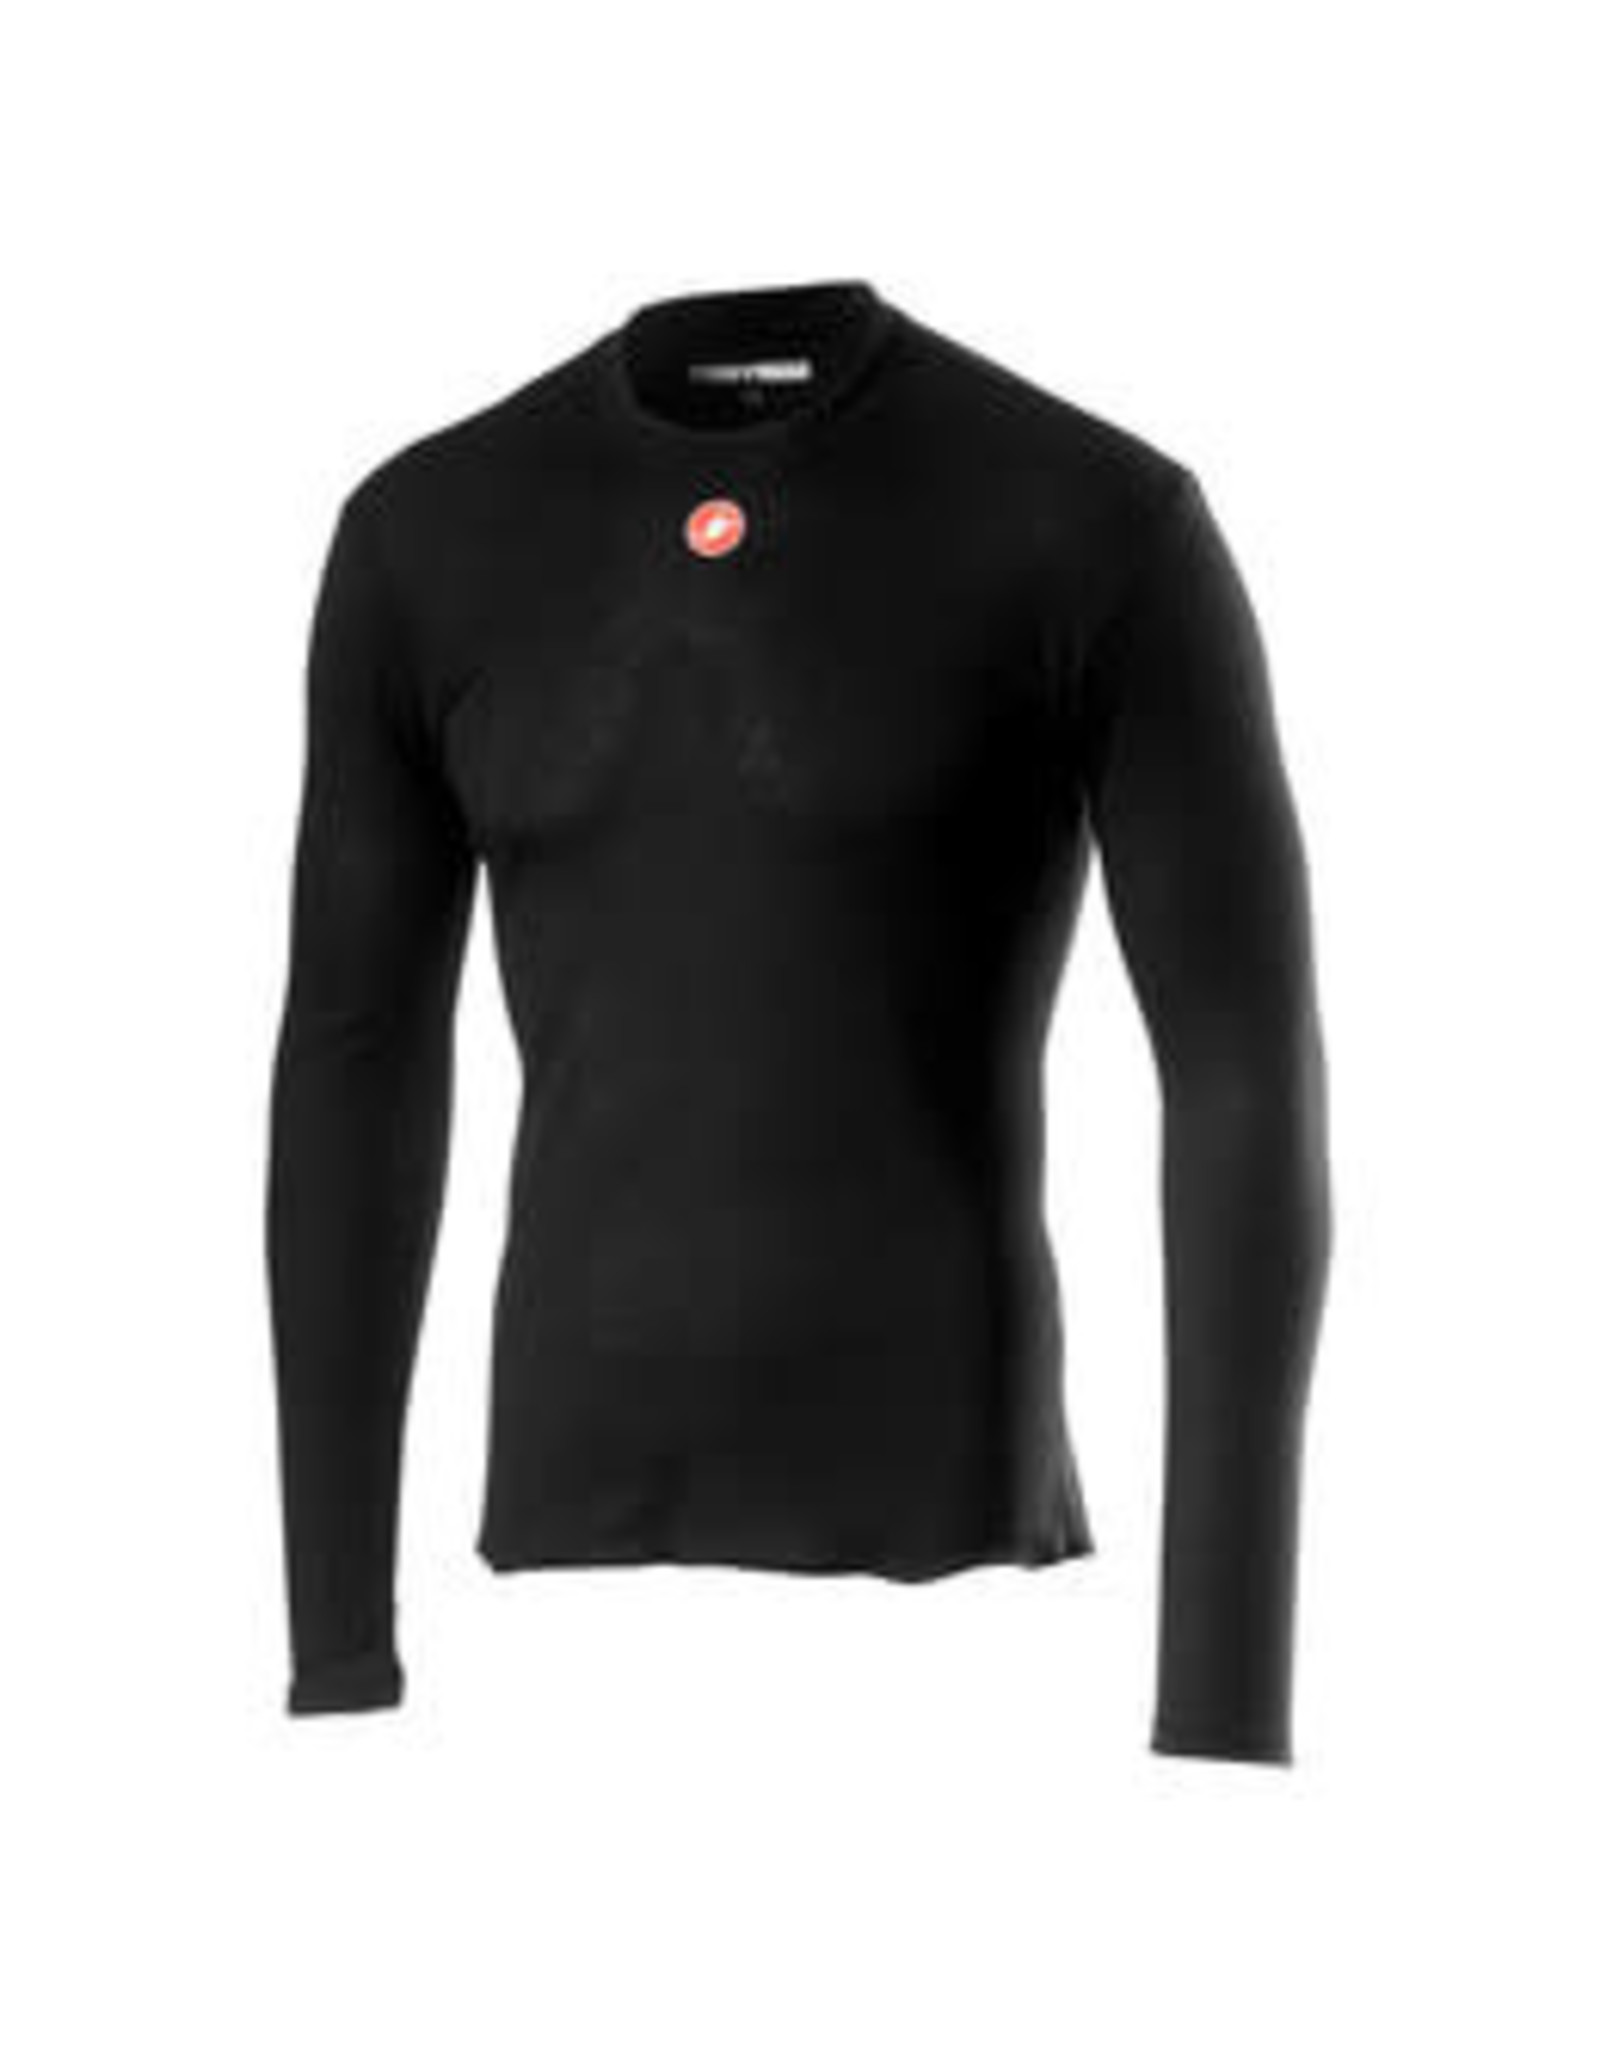 Castelli CASTELLI, Prosecco Tech LS, Mens Baselayer